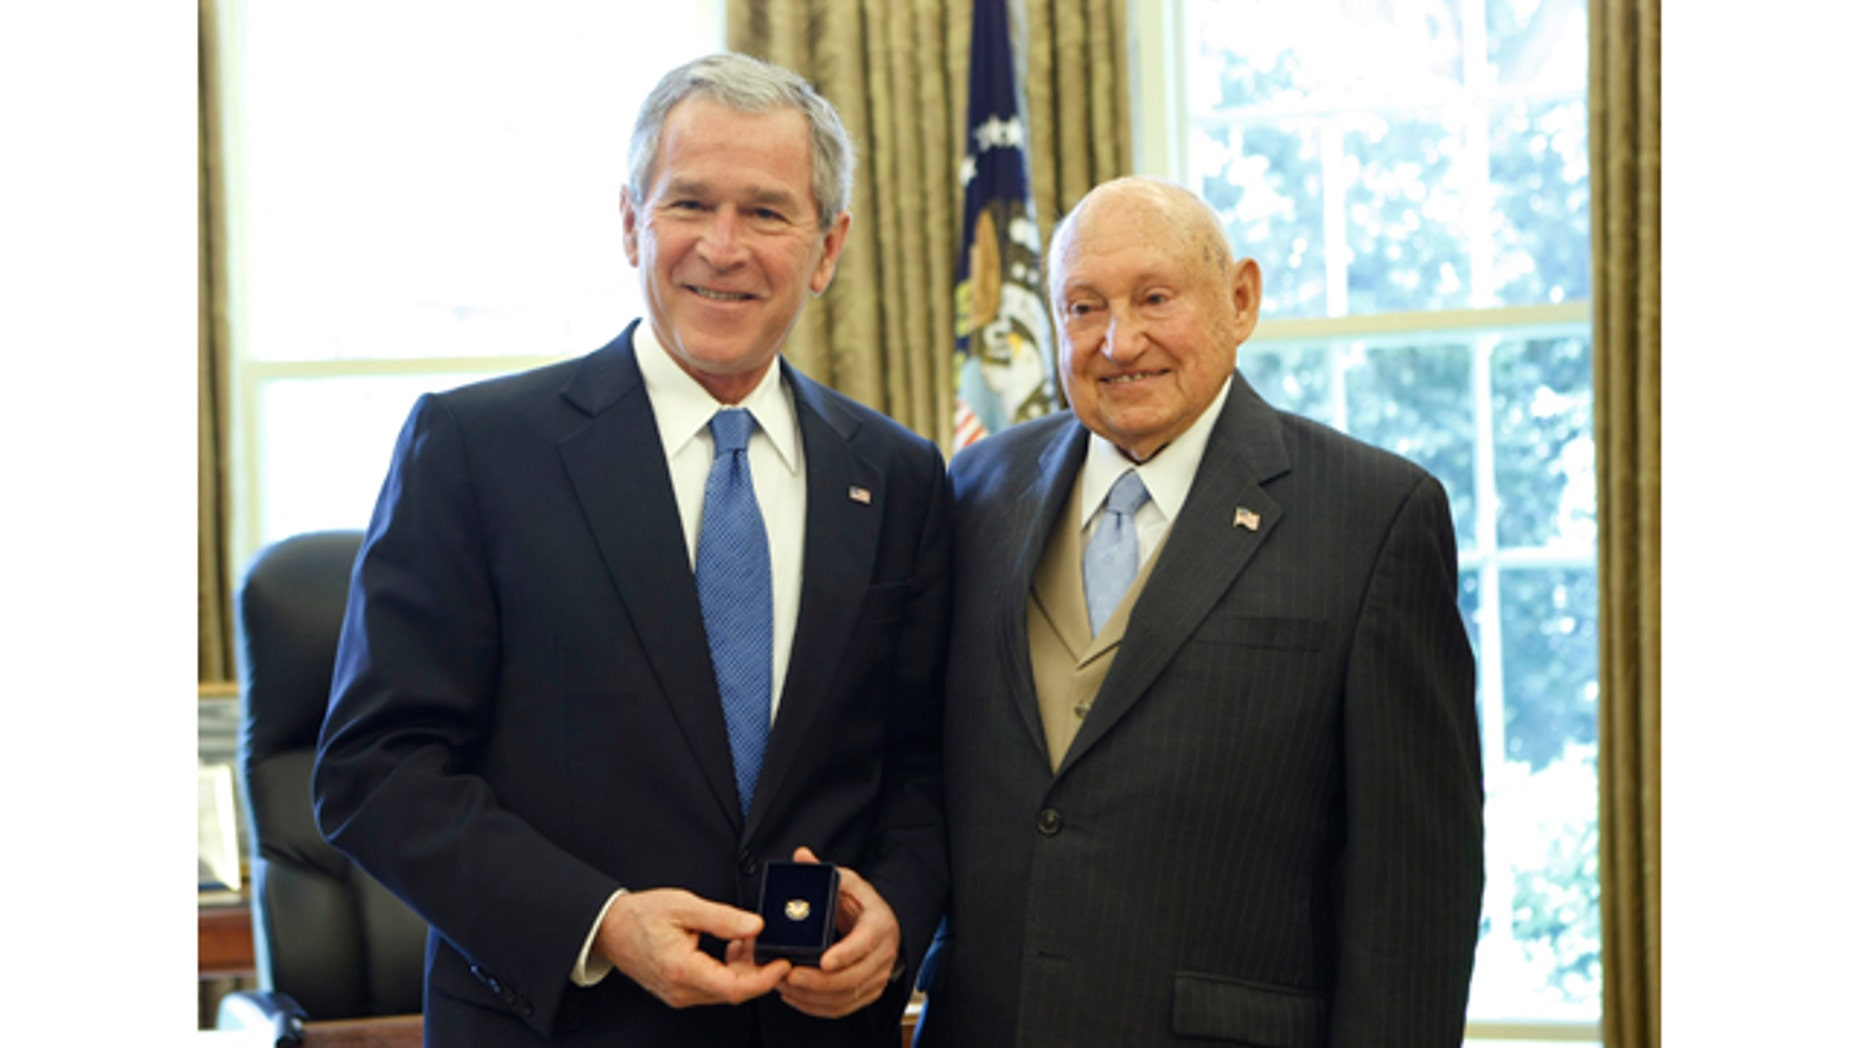 FILE - In this April 15, 2008, file photo, then President George W. Bush presents the Lifetime President's Volunteer Service Award to Chick fil-A Inc. founder S. Truett Cathy in the Oval Office of the White House in Washington. (AP Photo/Gerald Herbert, File)